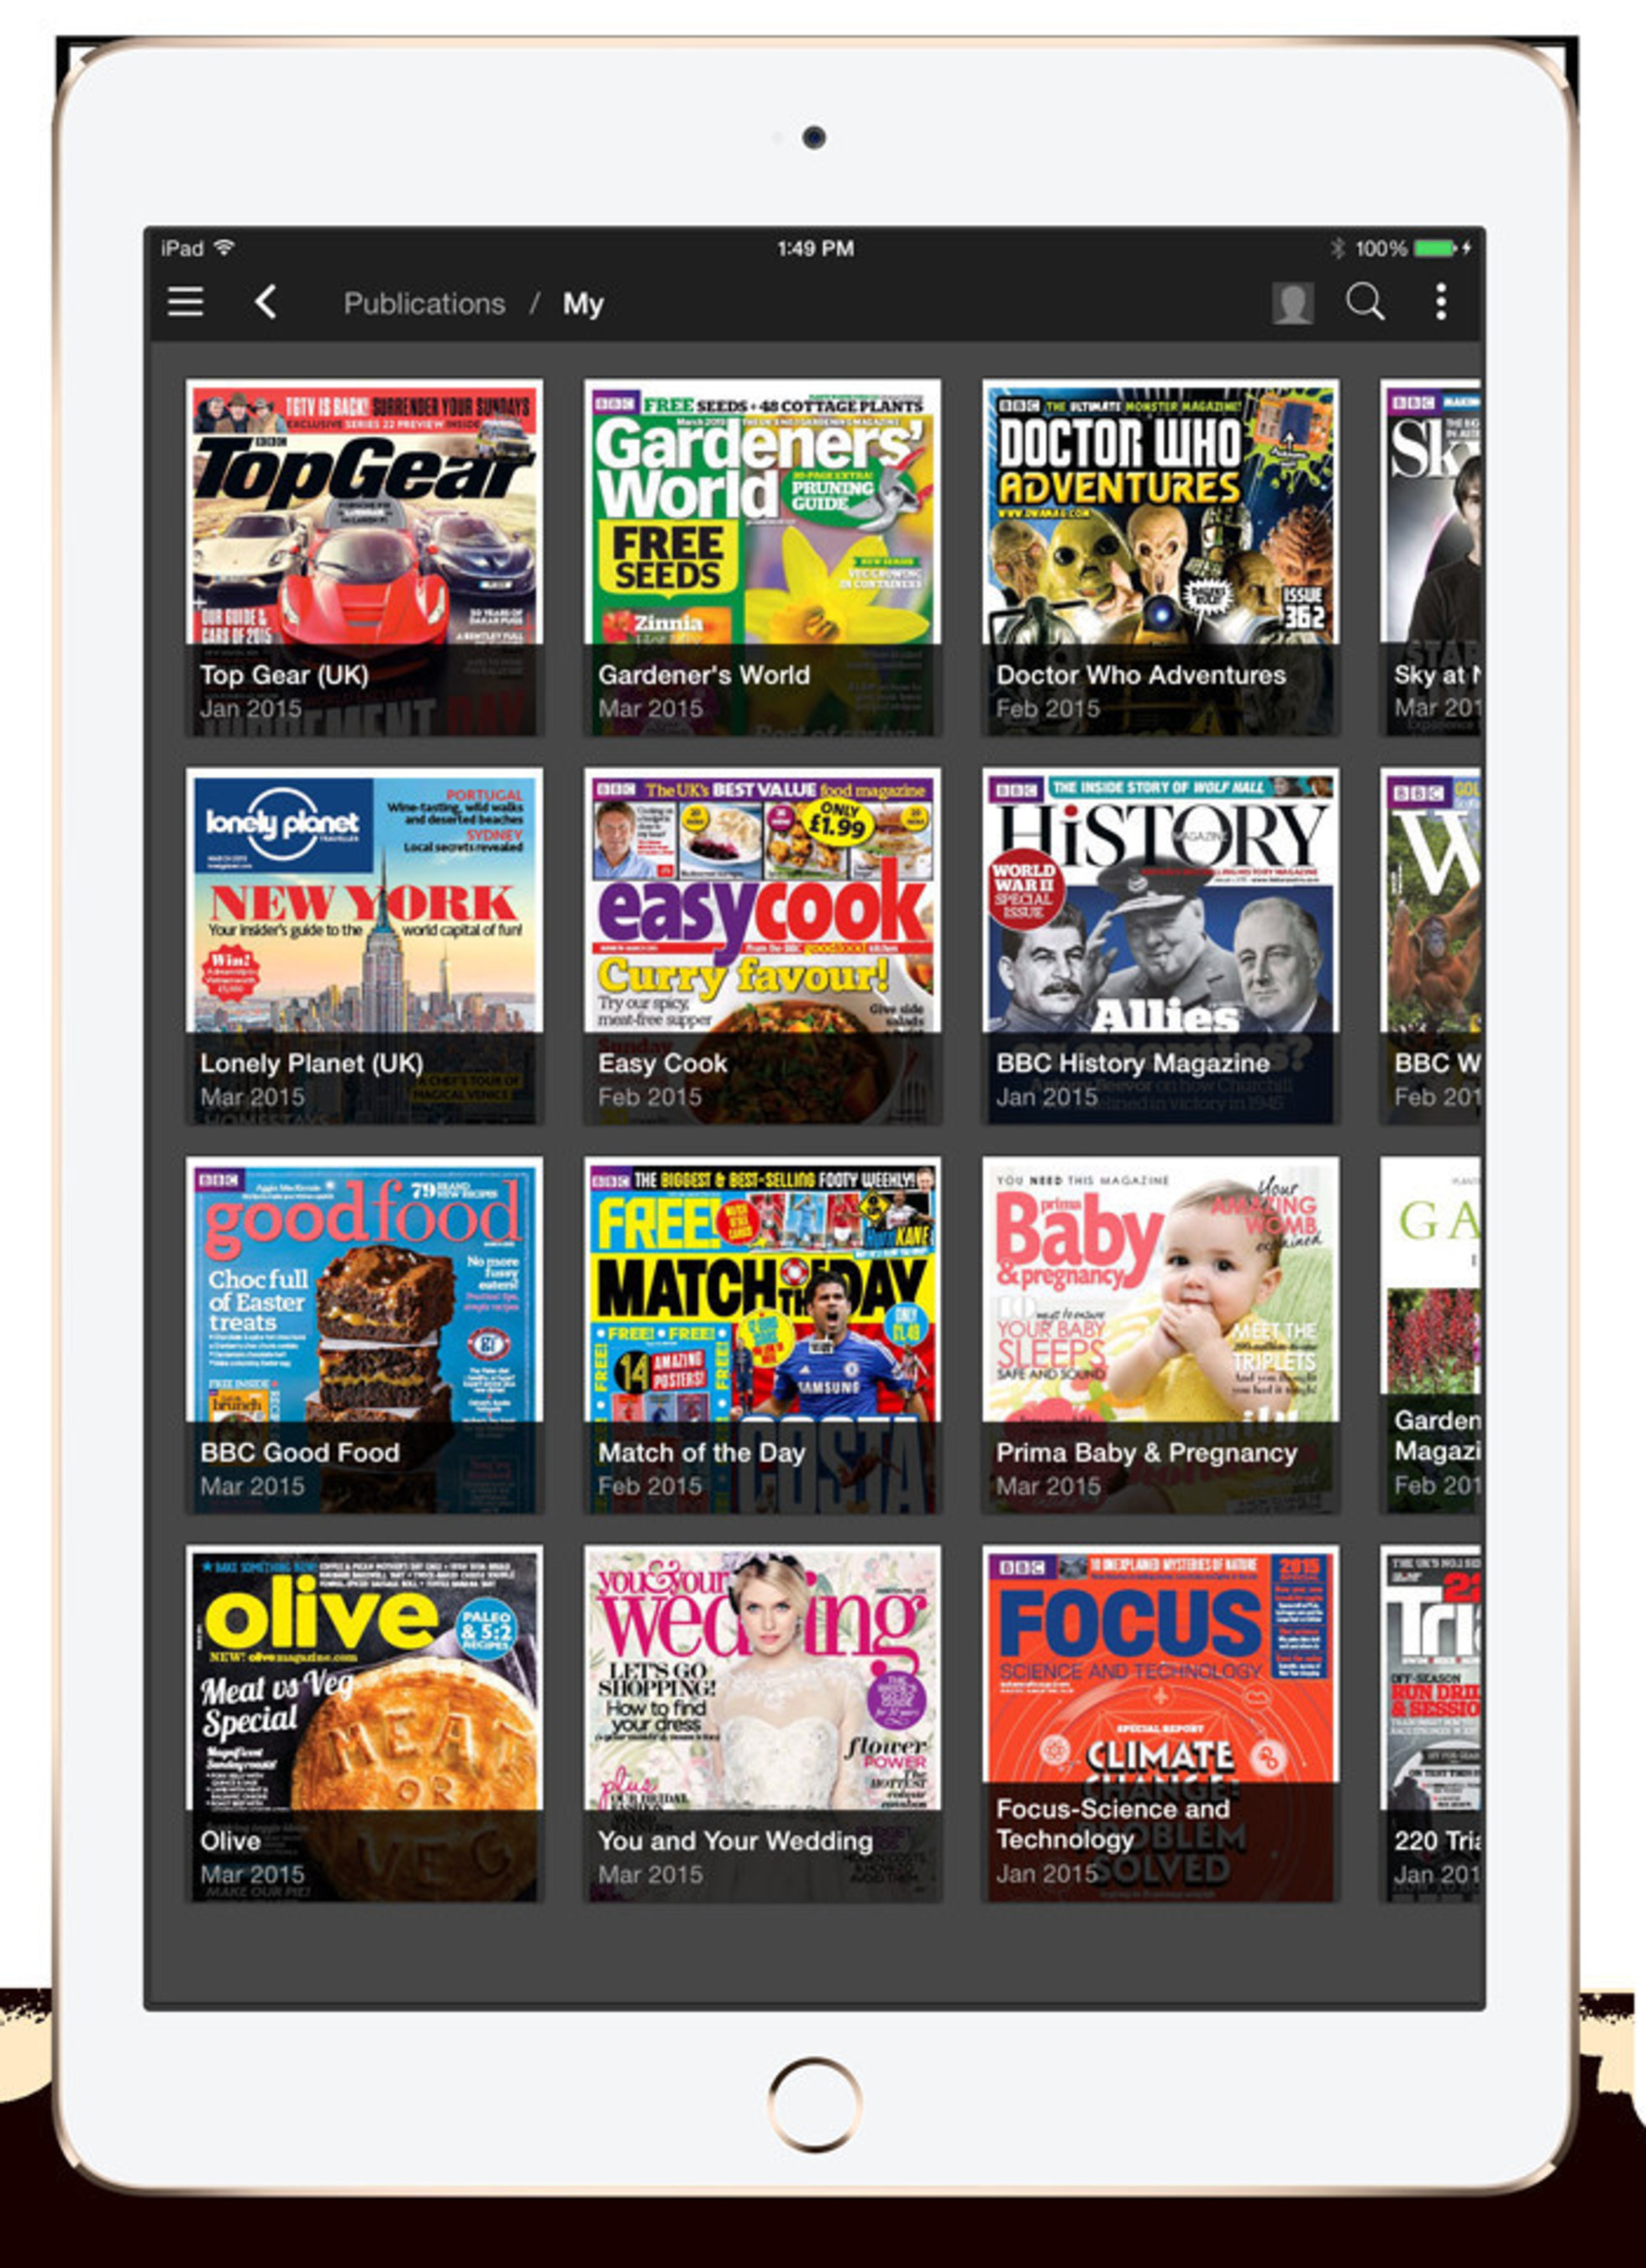 Immediate Media Company poised to reach over 250 million people with PressReader